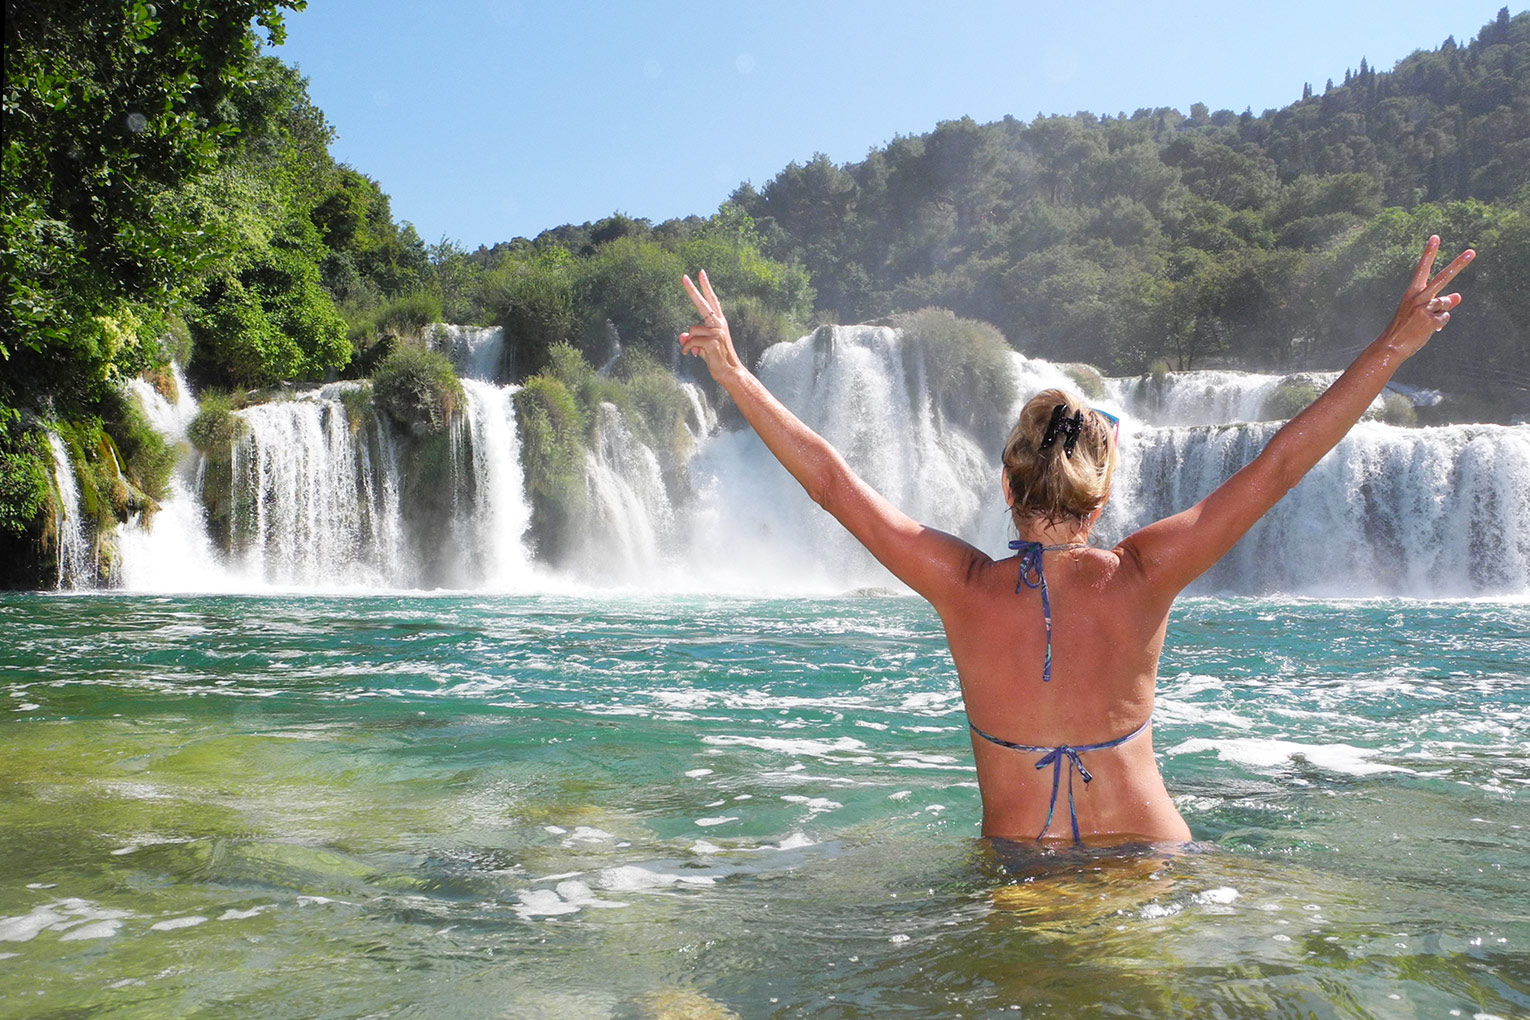 Swimming by Skradinski buk waterfall in Krka National Park